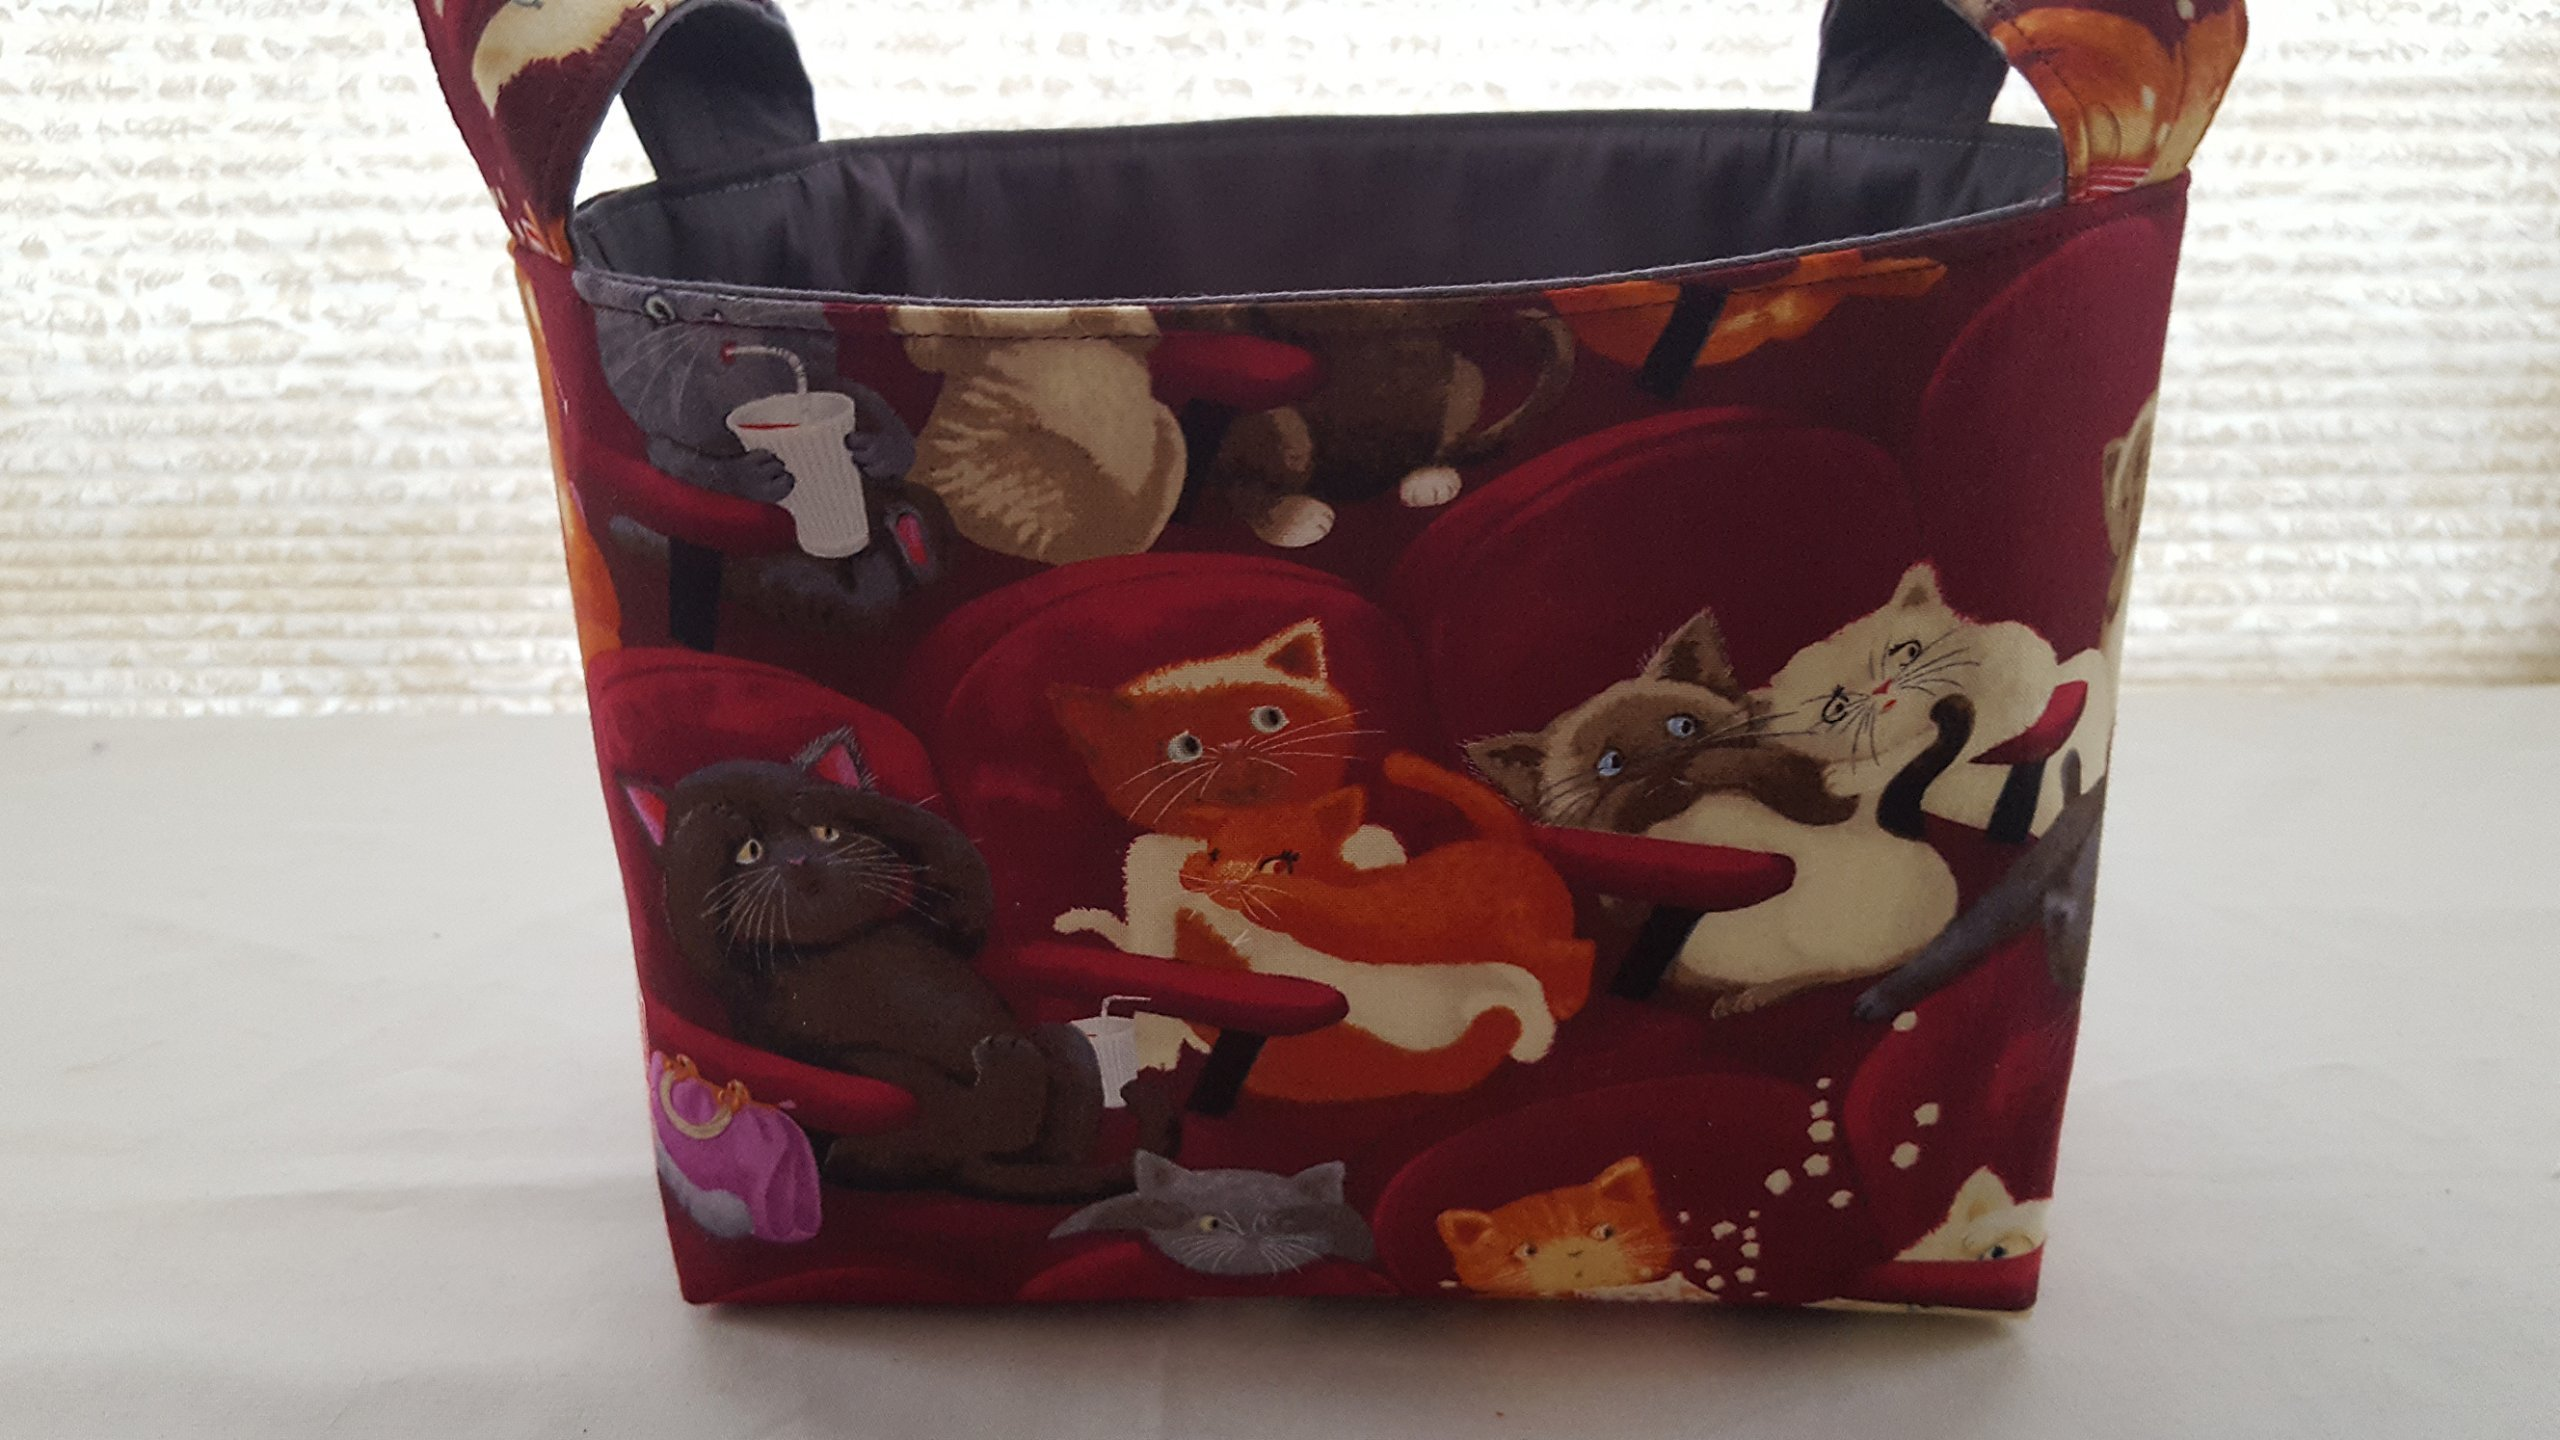 Fabric Organizer Basket Bin Caddy Storage Container - Movie Theater Cats Maroon